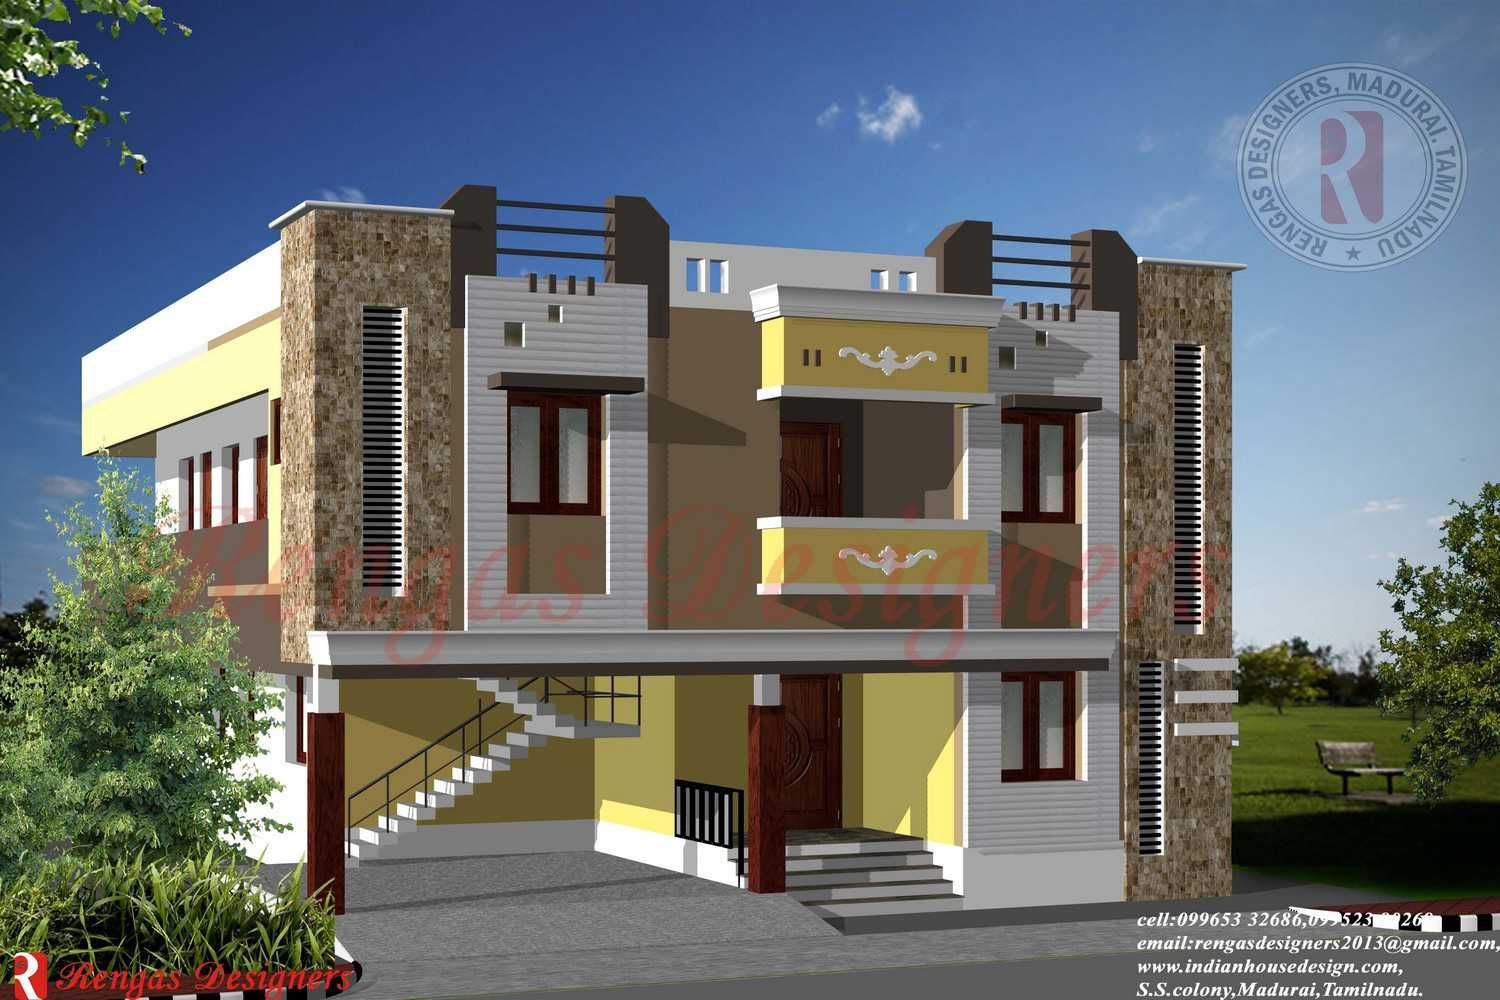 Parapet wall designs google search residence for Indian house plans for free